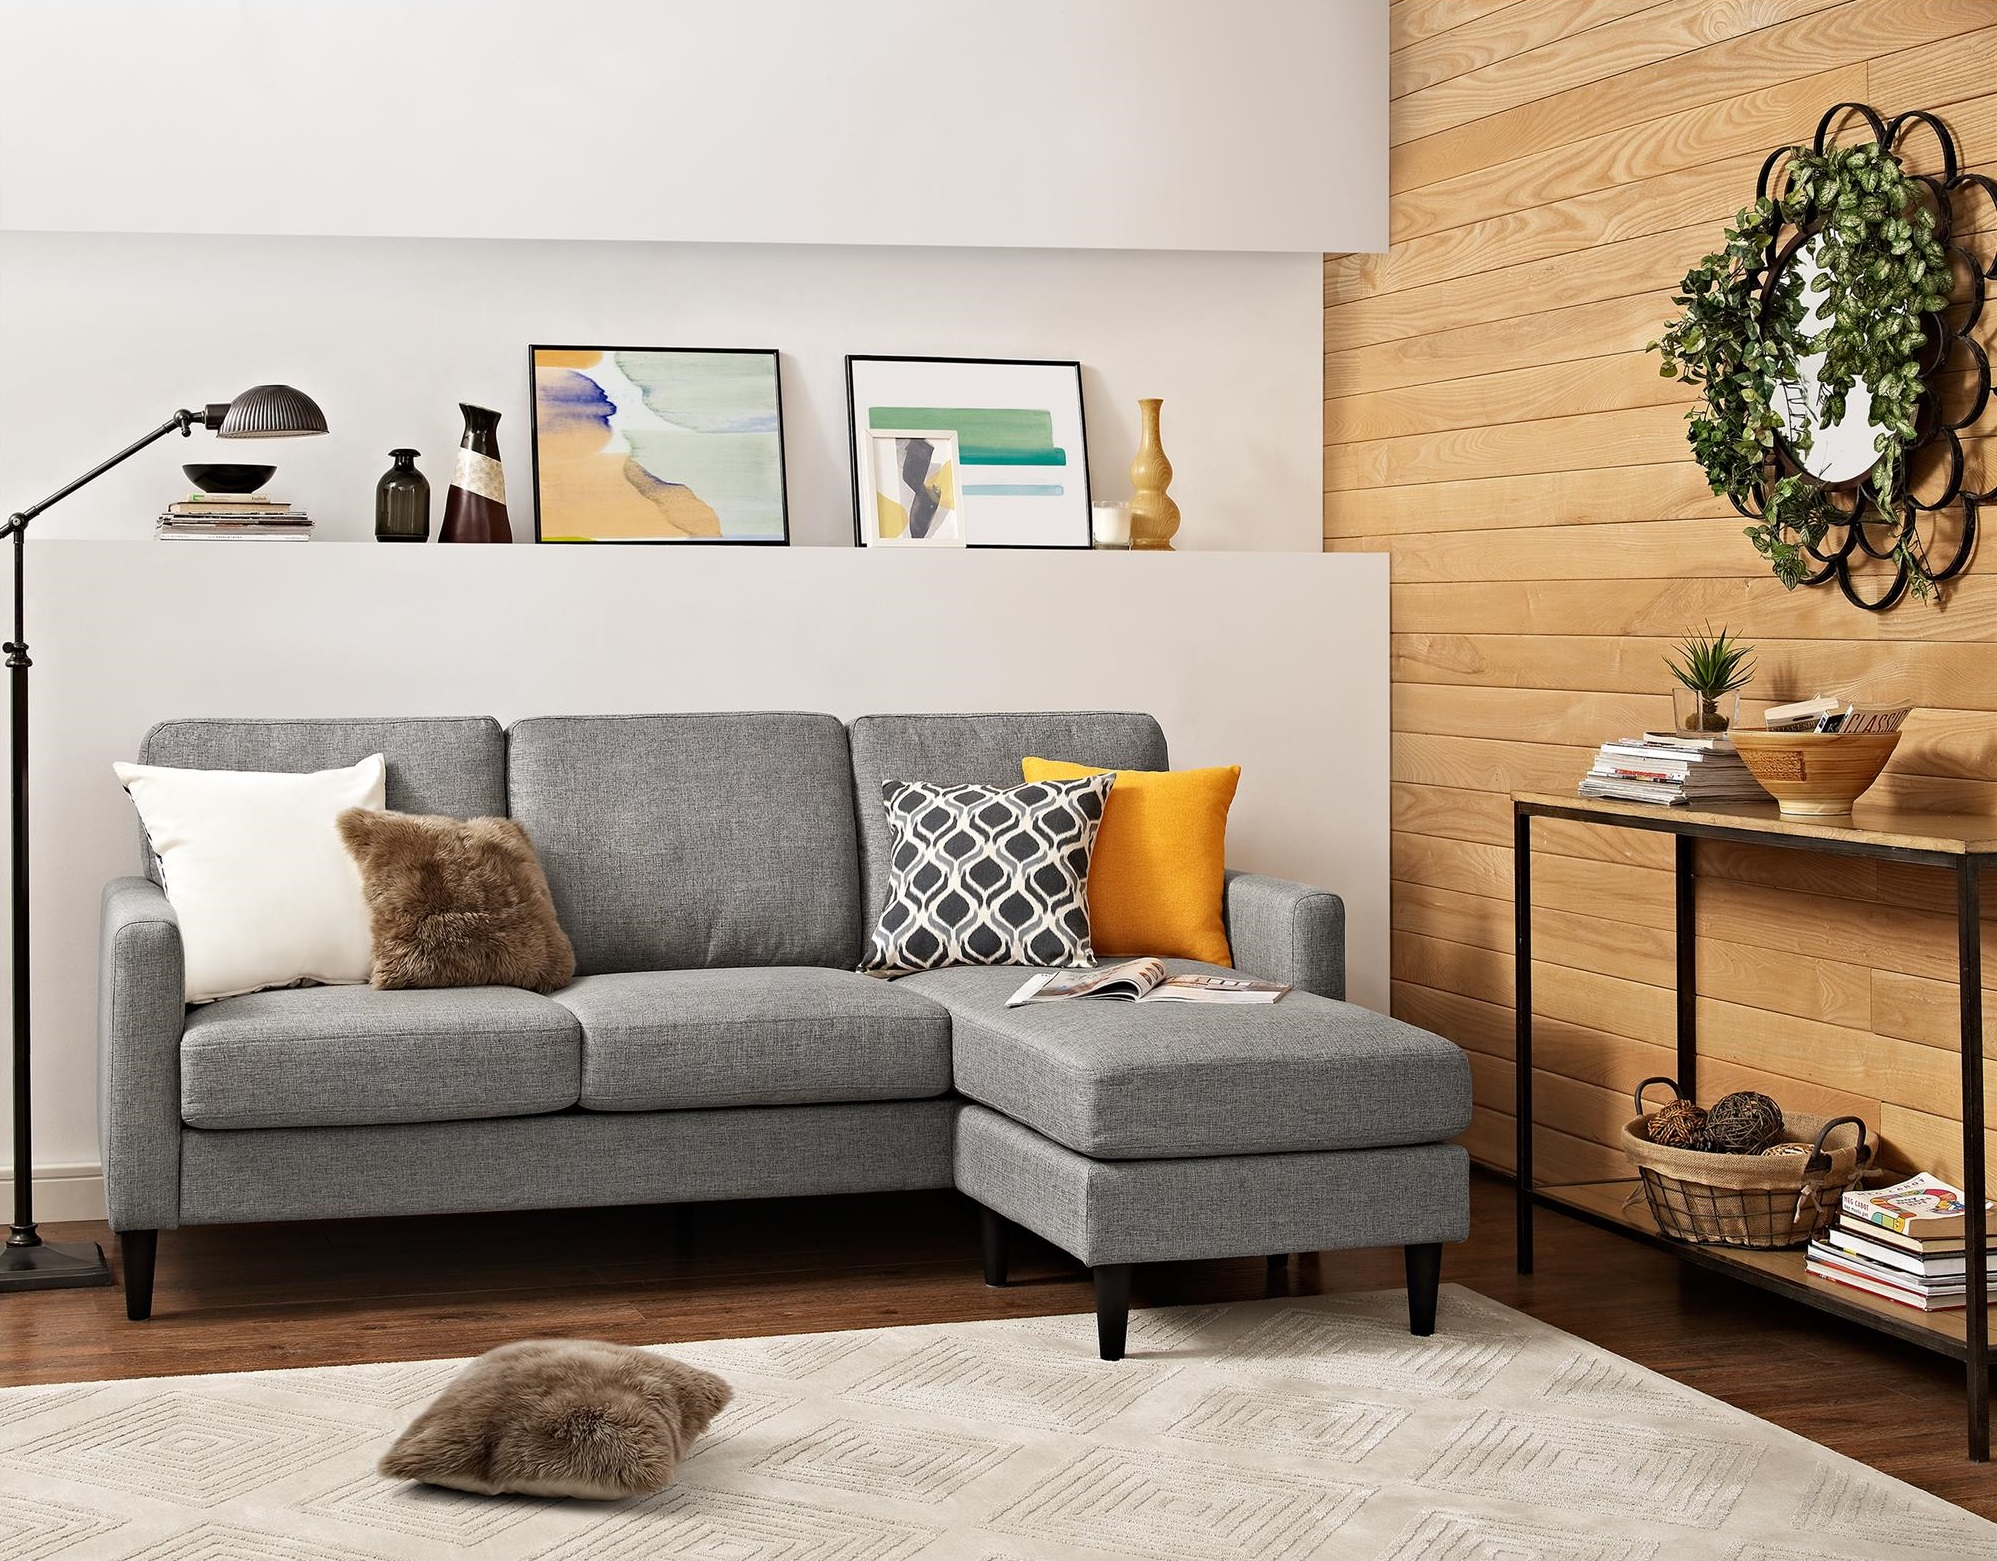 new bargains darby home darley end table cazenovia reversible sectional accent target here everything ing from massive memorial day coastal bathroom accessories inch round